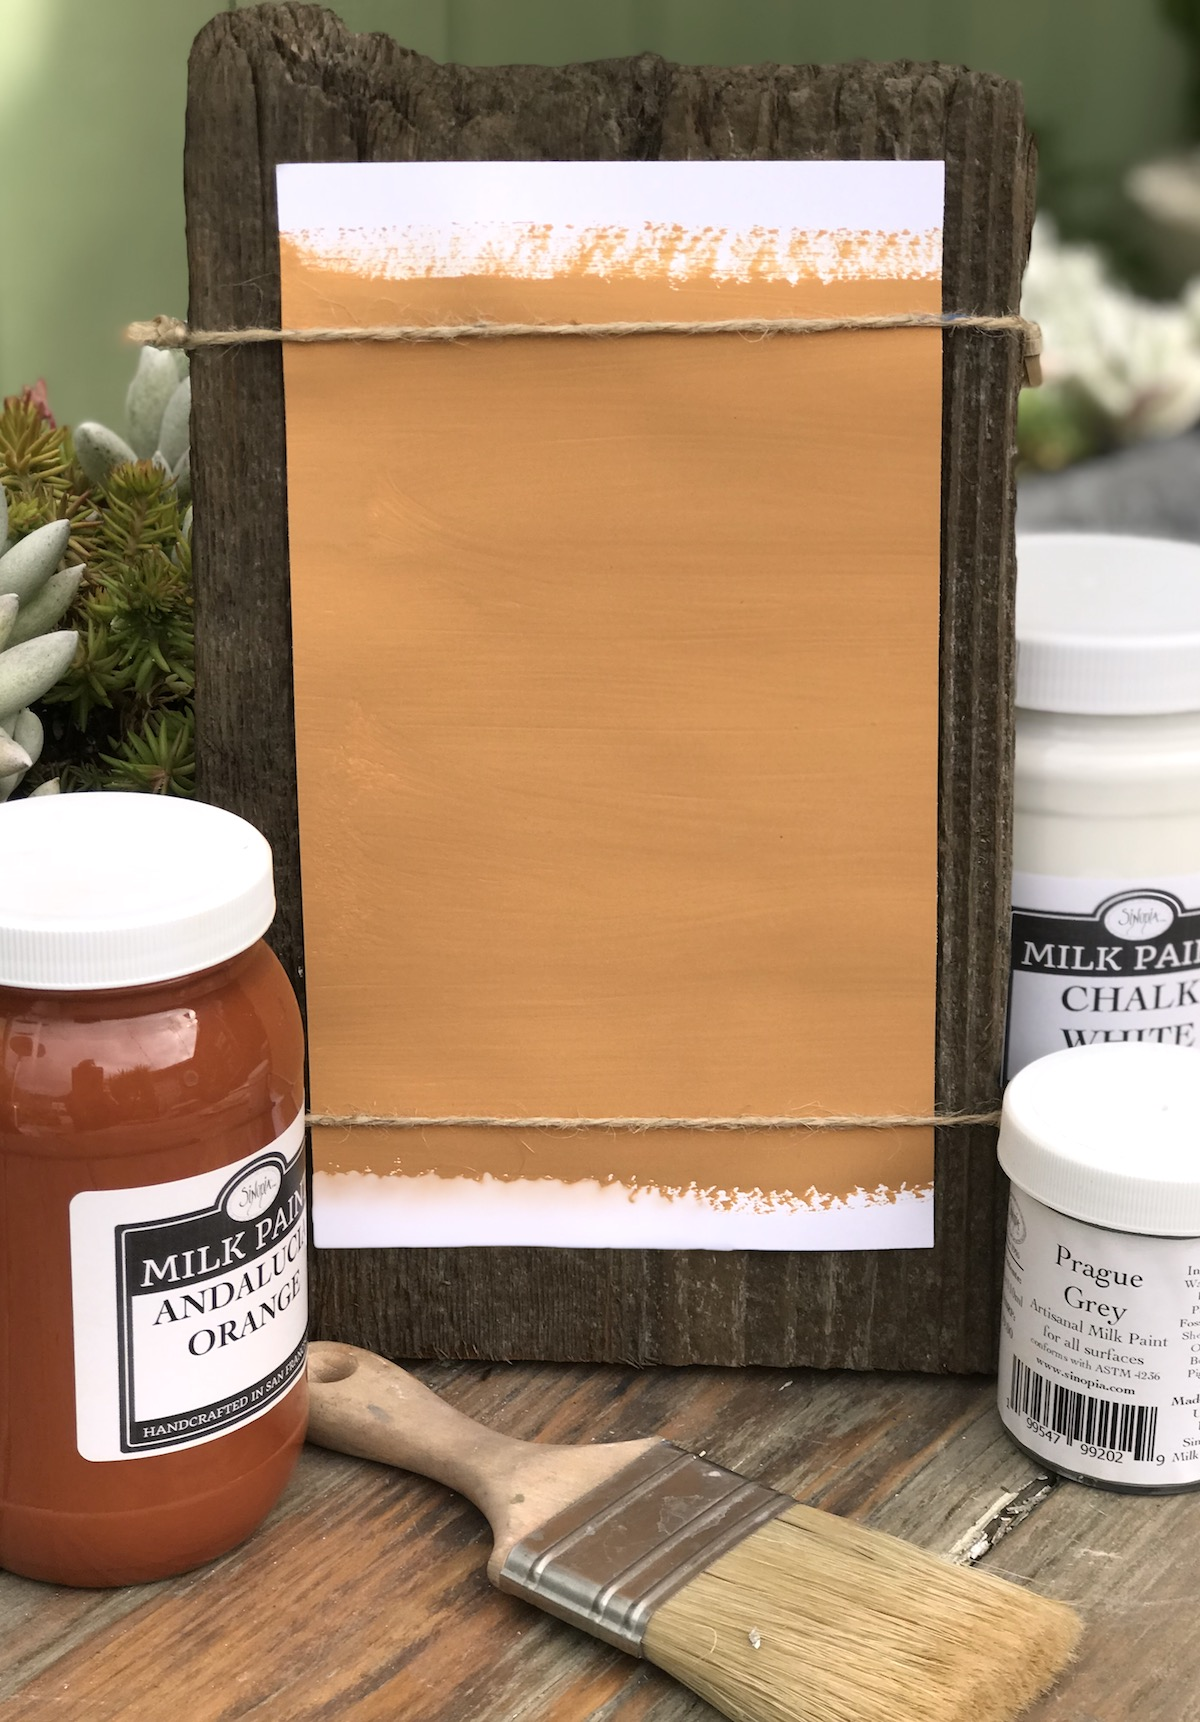 All Natural Artisanal Milk Paint (Casein) Sienna Orange